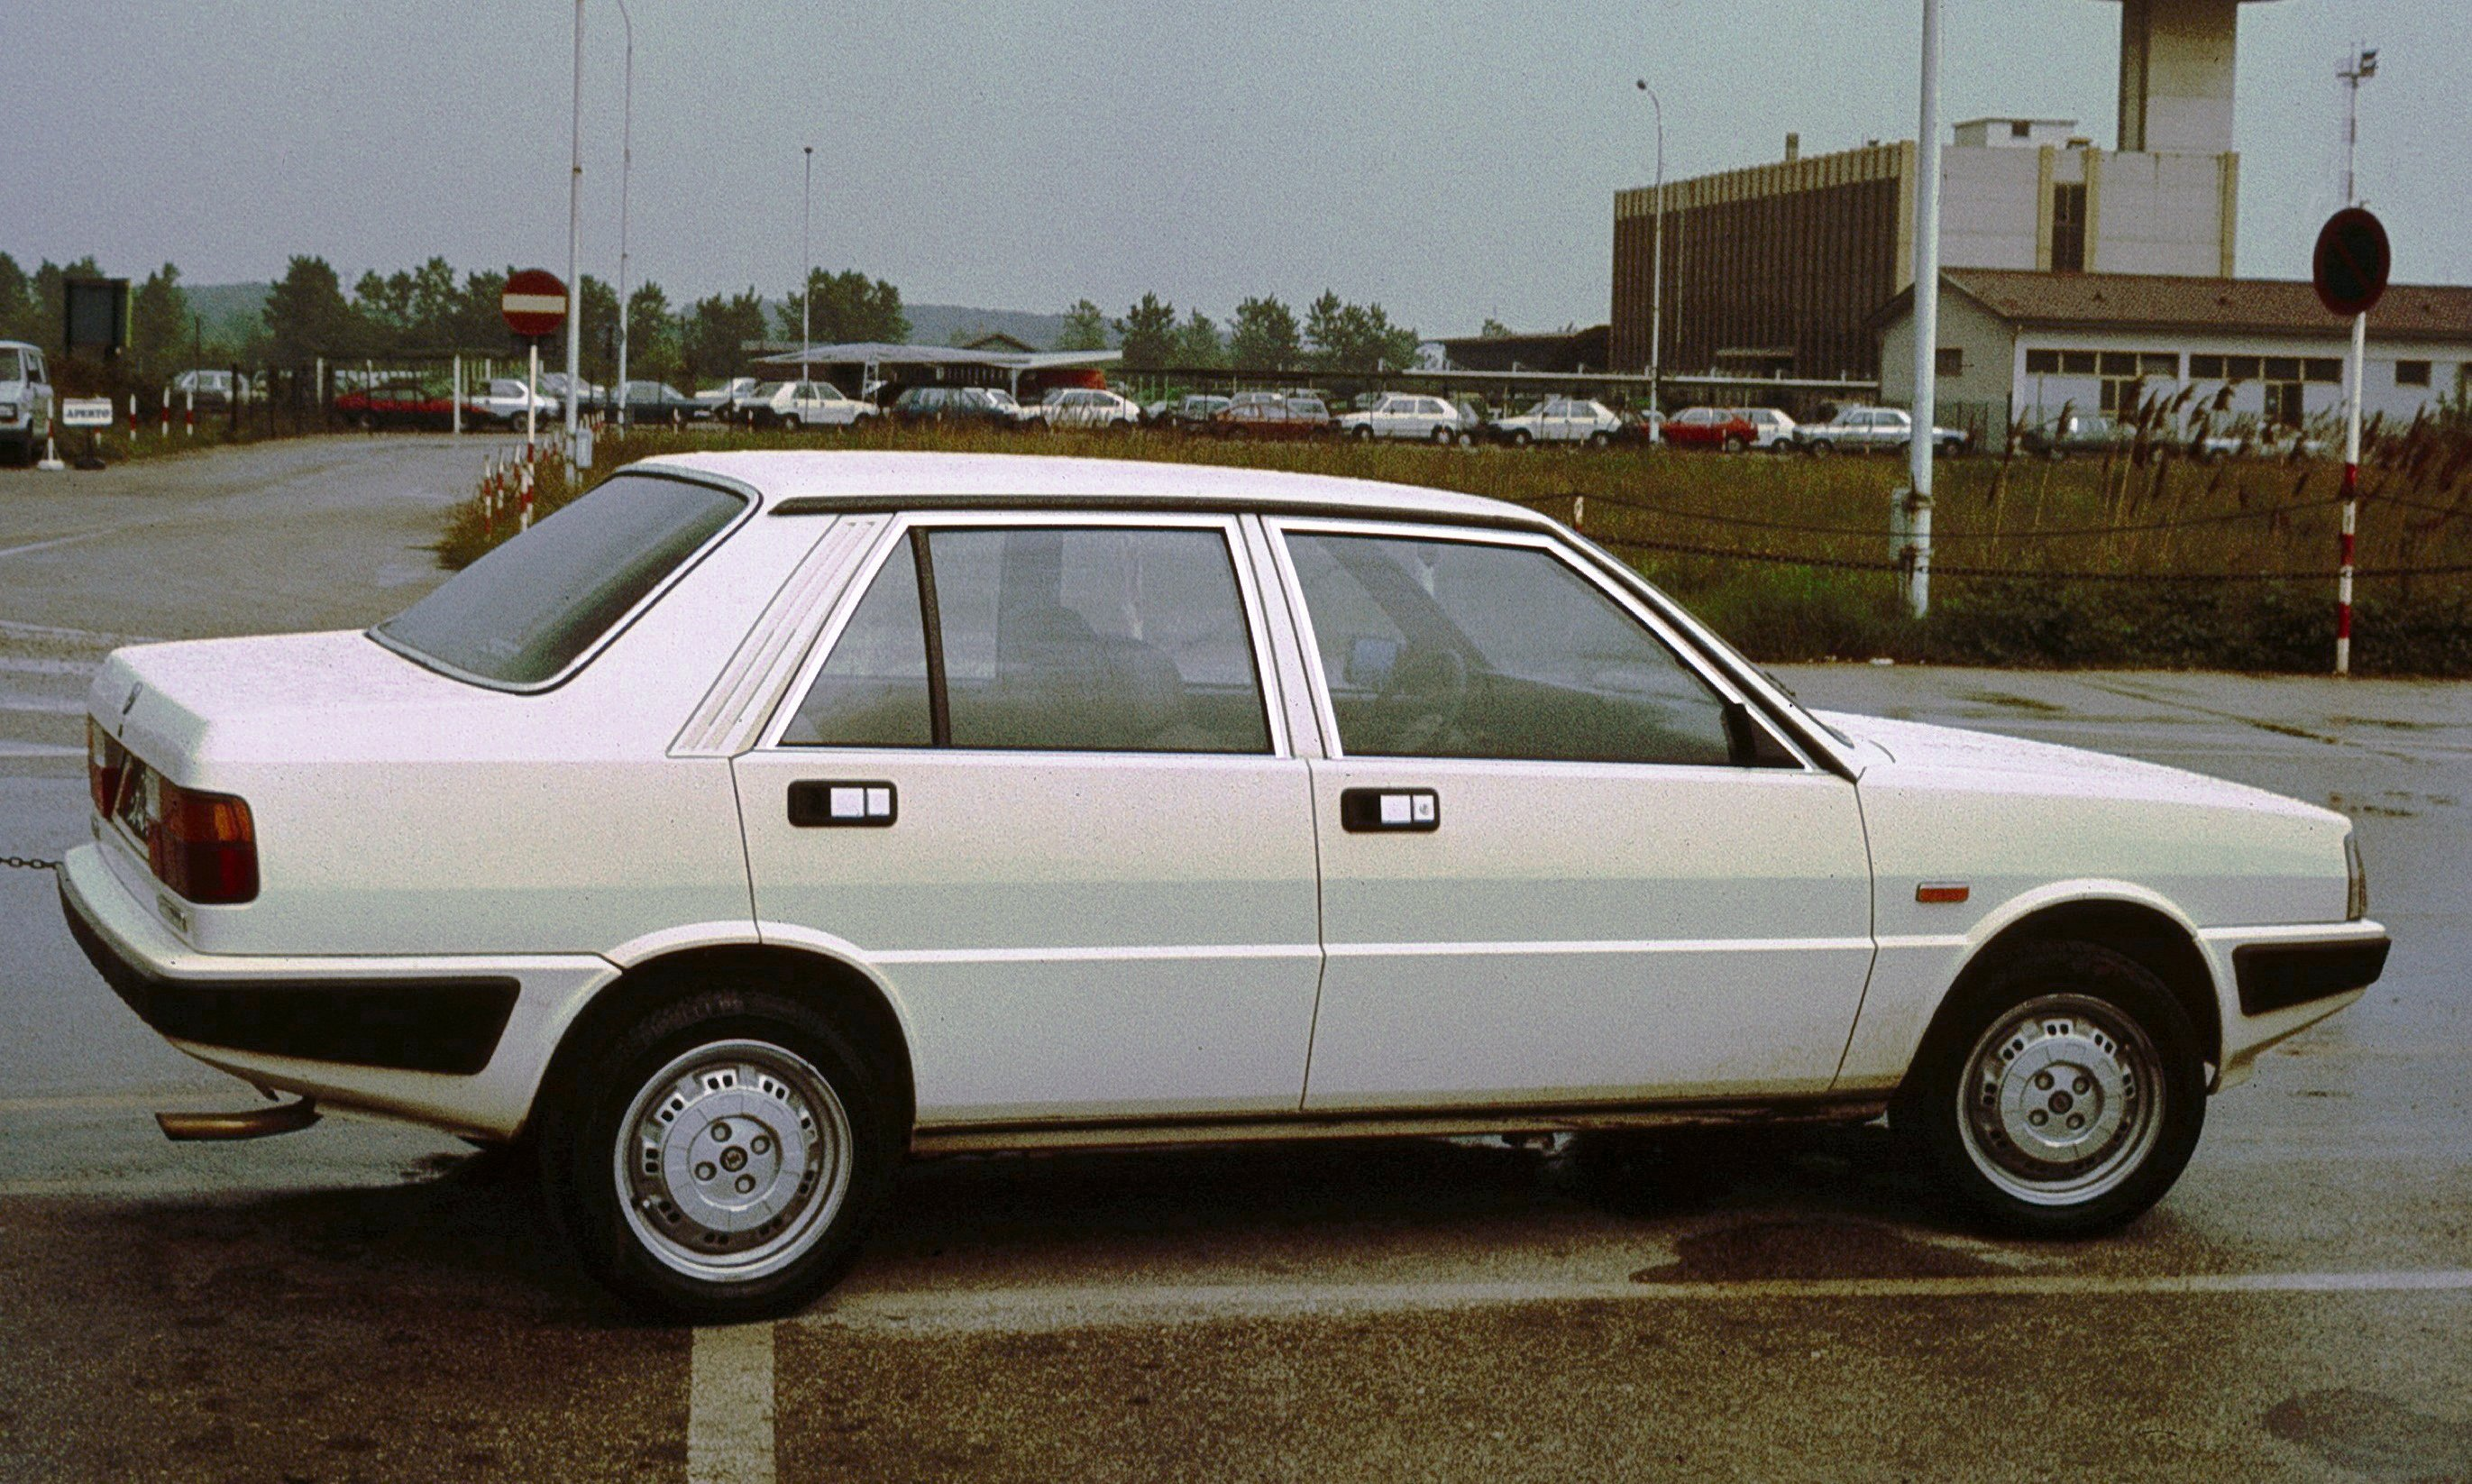 http://auto-database.com/image/pictures-of-lancia-prisma-13827.jpg